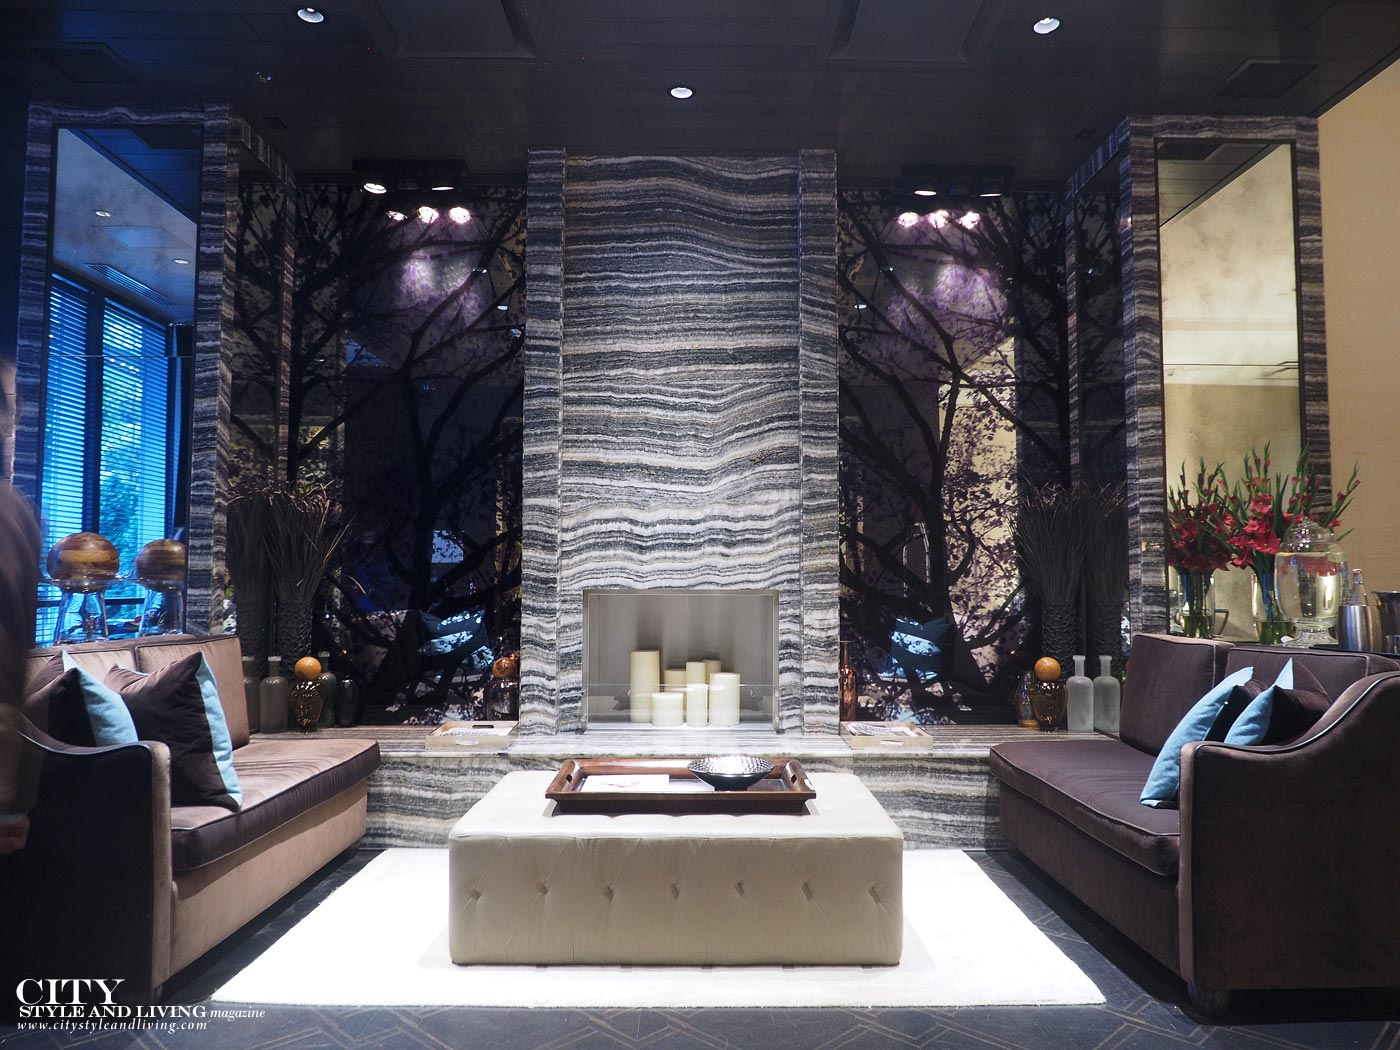 City Style and Living Magazine The Loden Vancouver lobby